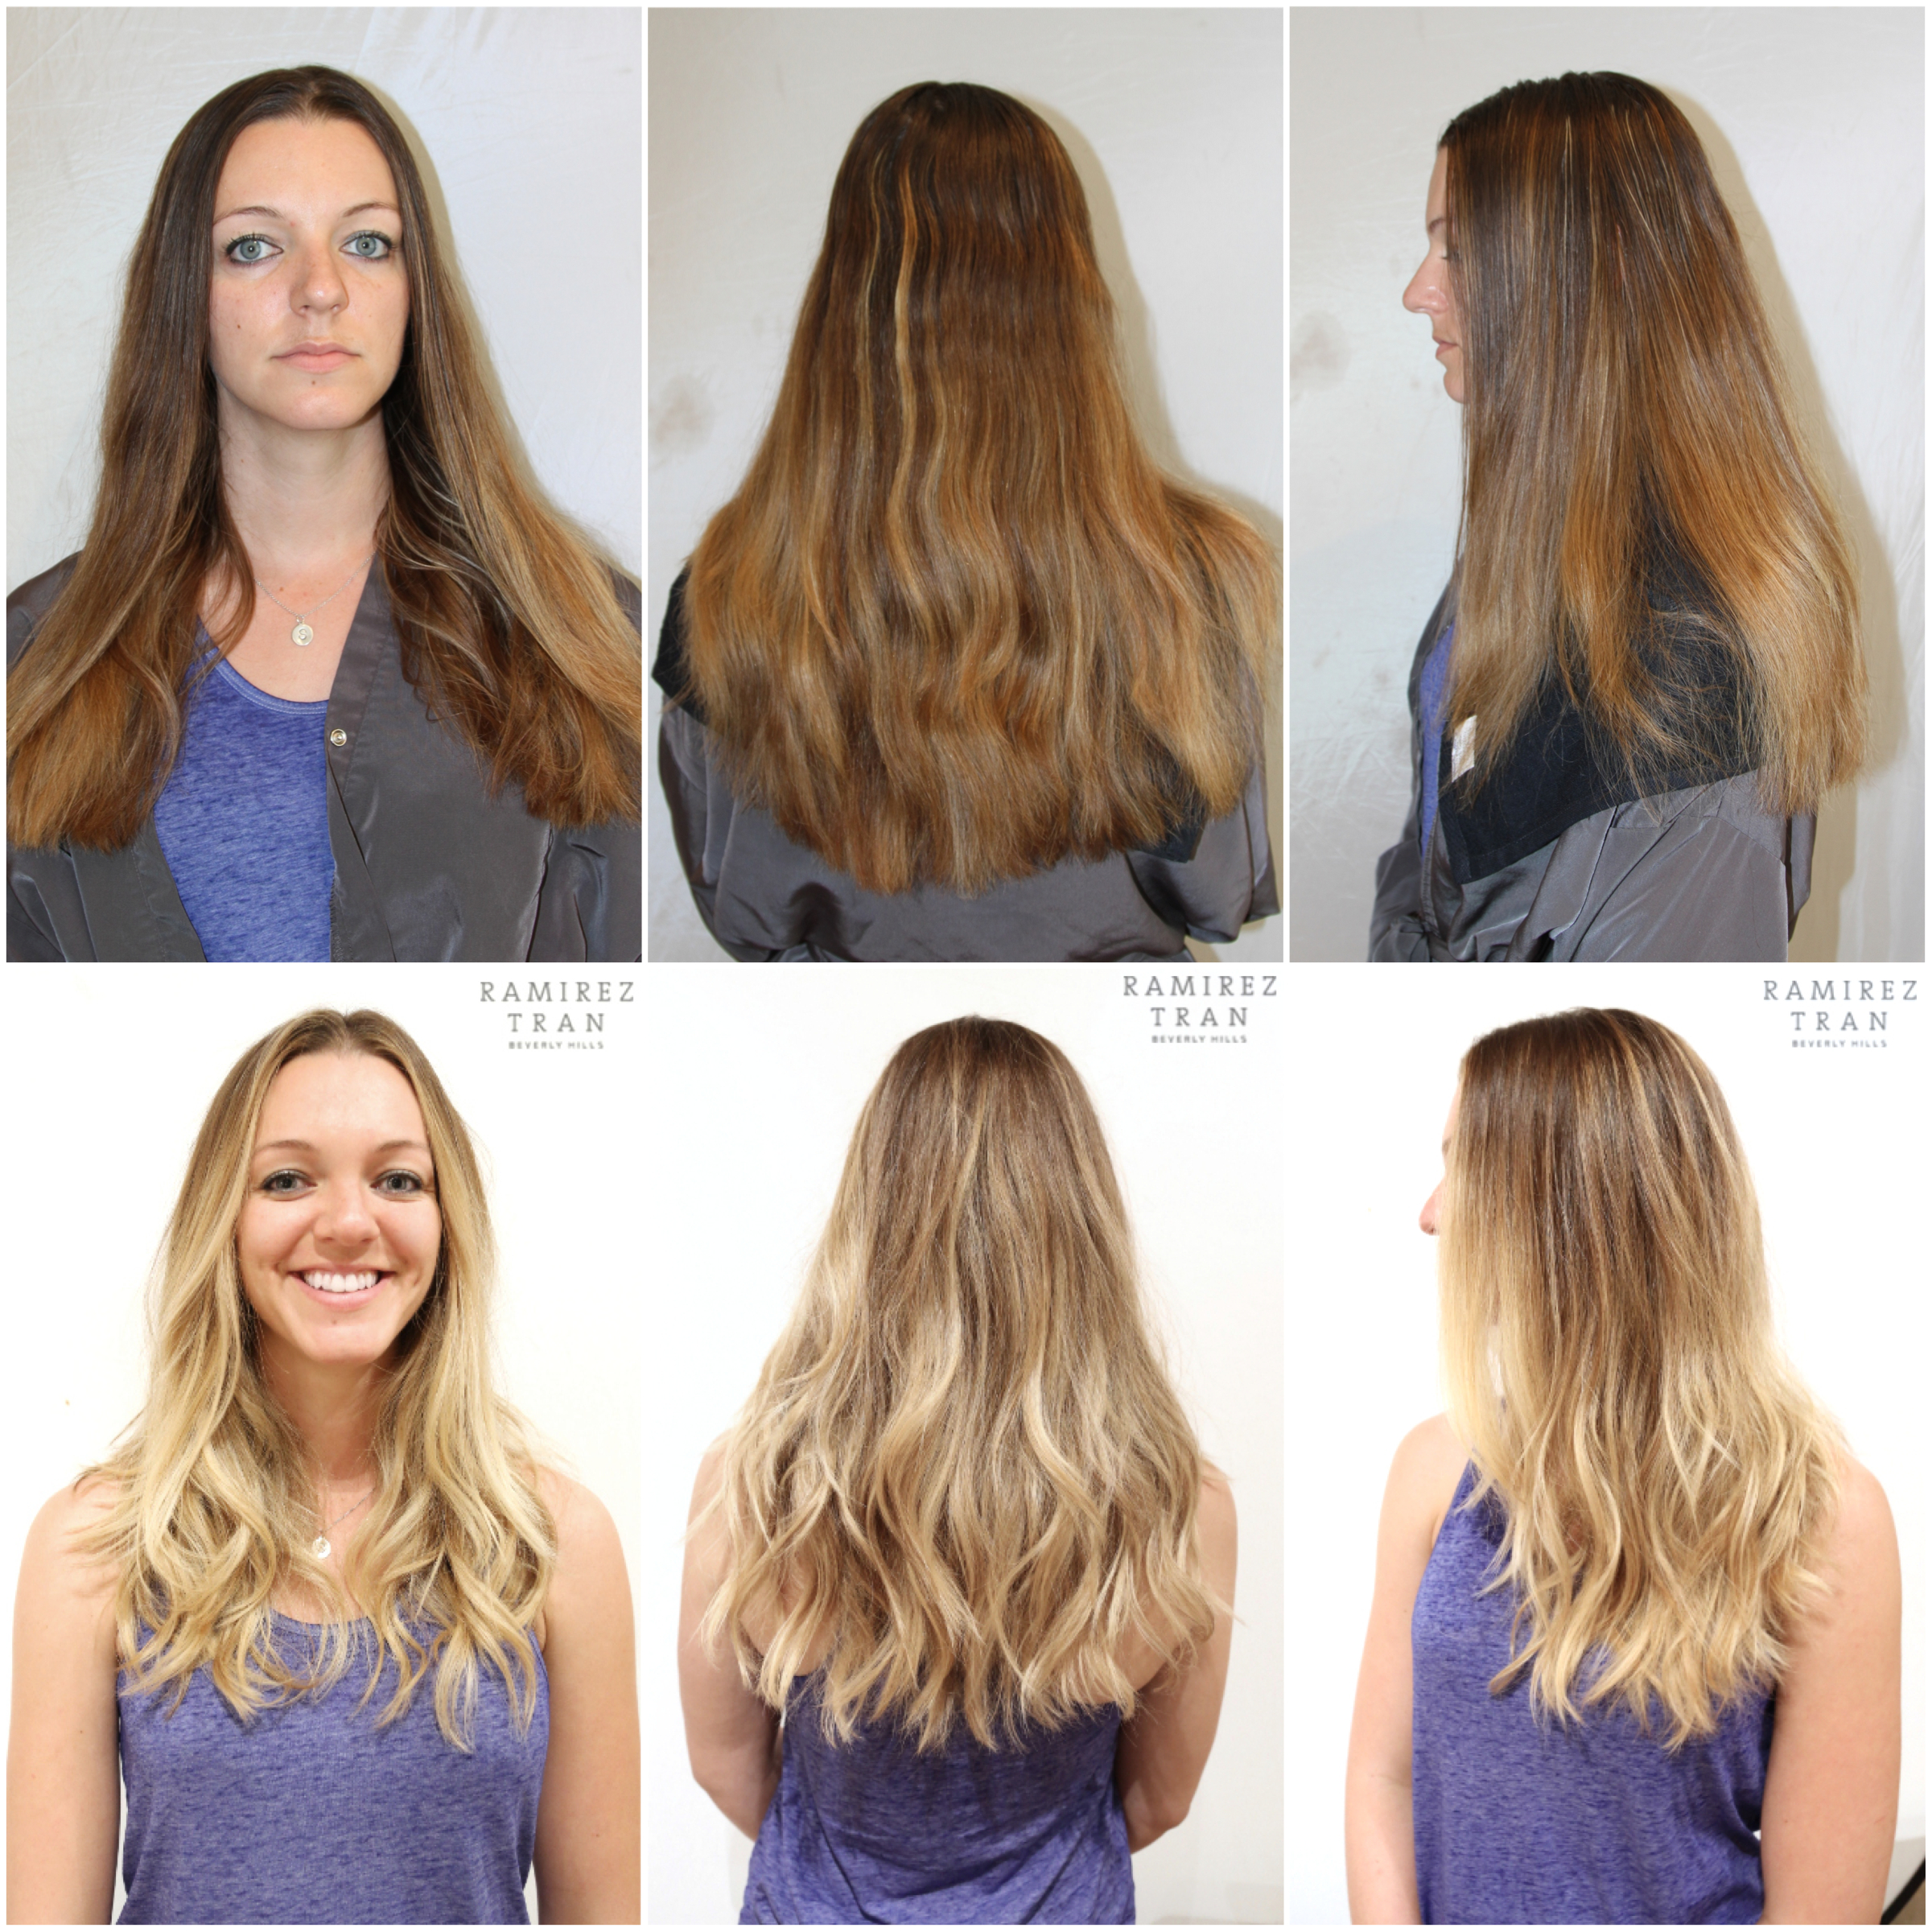 6e4650a53 This client came in with uneven brassy colored hair that was overdue for a  nice haircut. Johnny blended a natural looking beige color with golden  blonde ...